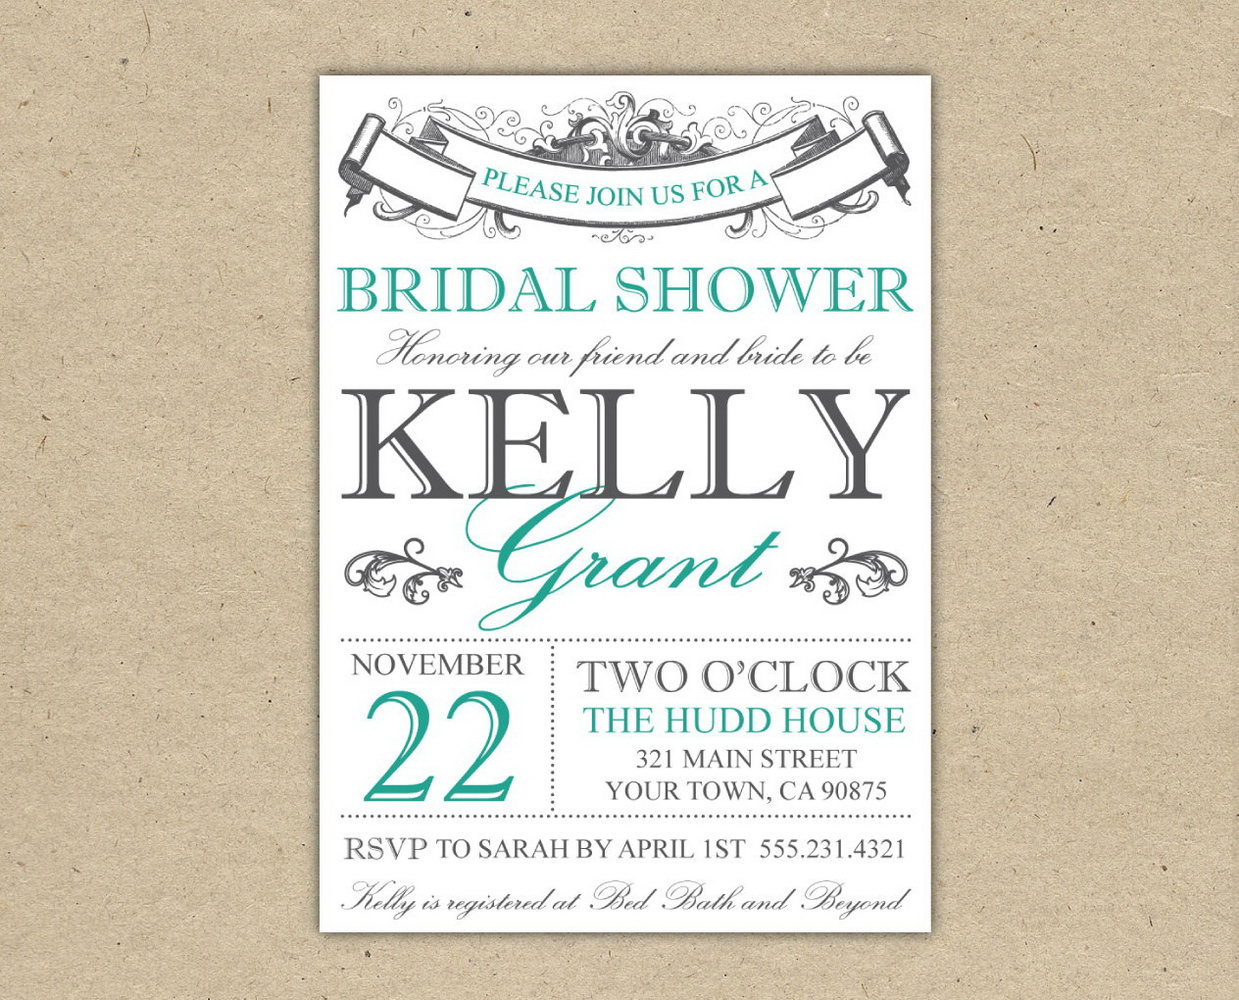 graphic relating to Free Printable Bridal Shower Invitation Templates for Word named Free of charge Printable Bridal Shower Invitation Templates For Term